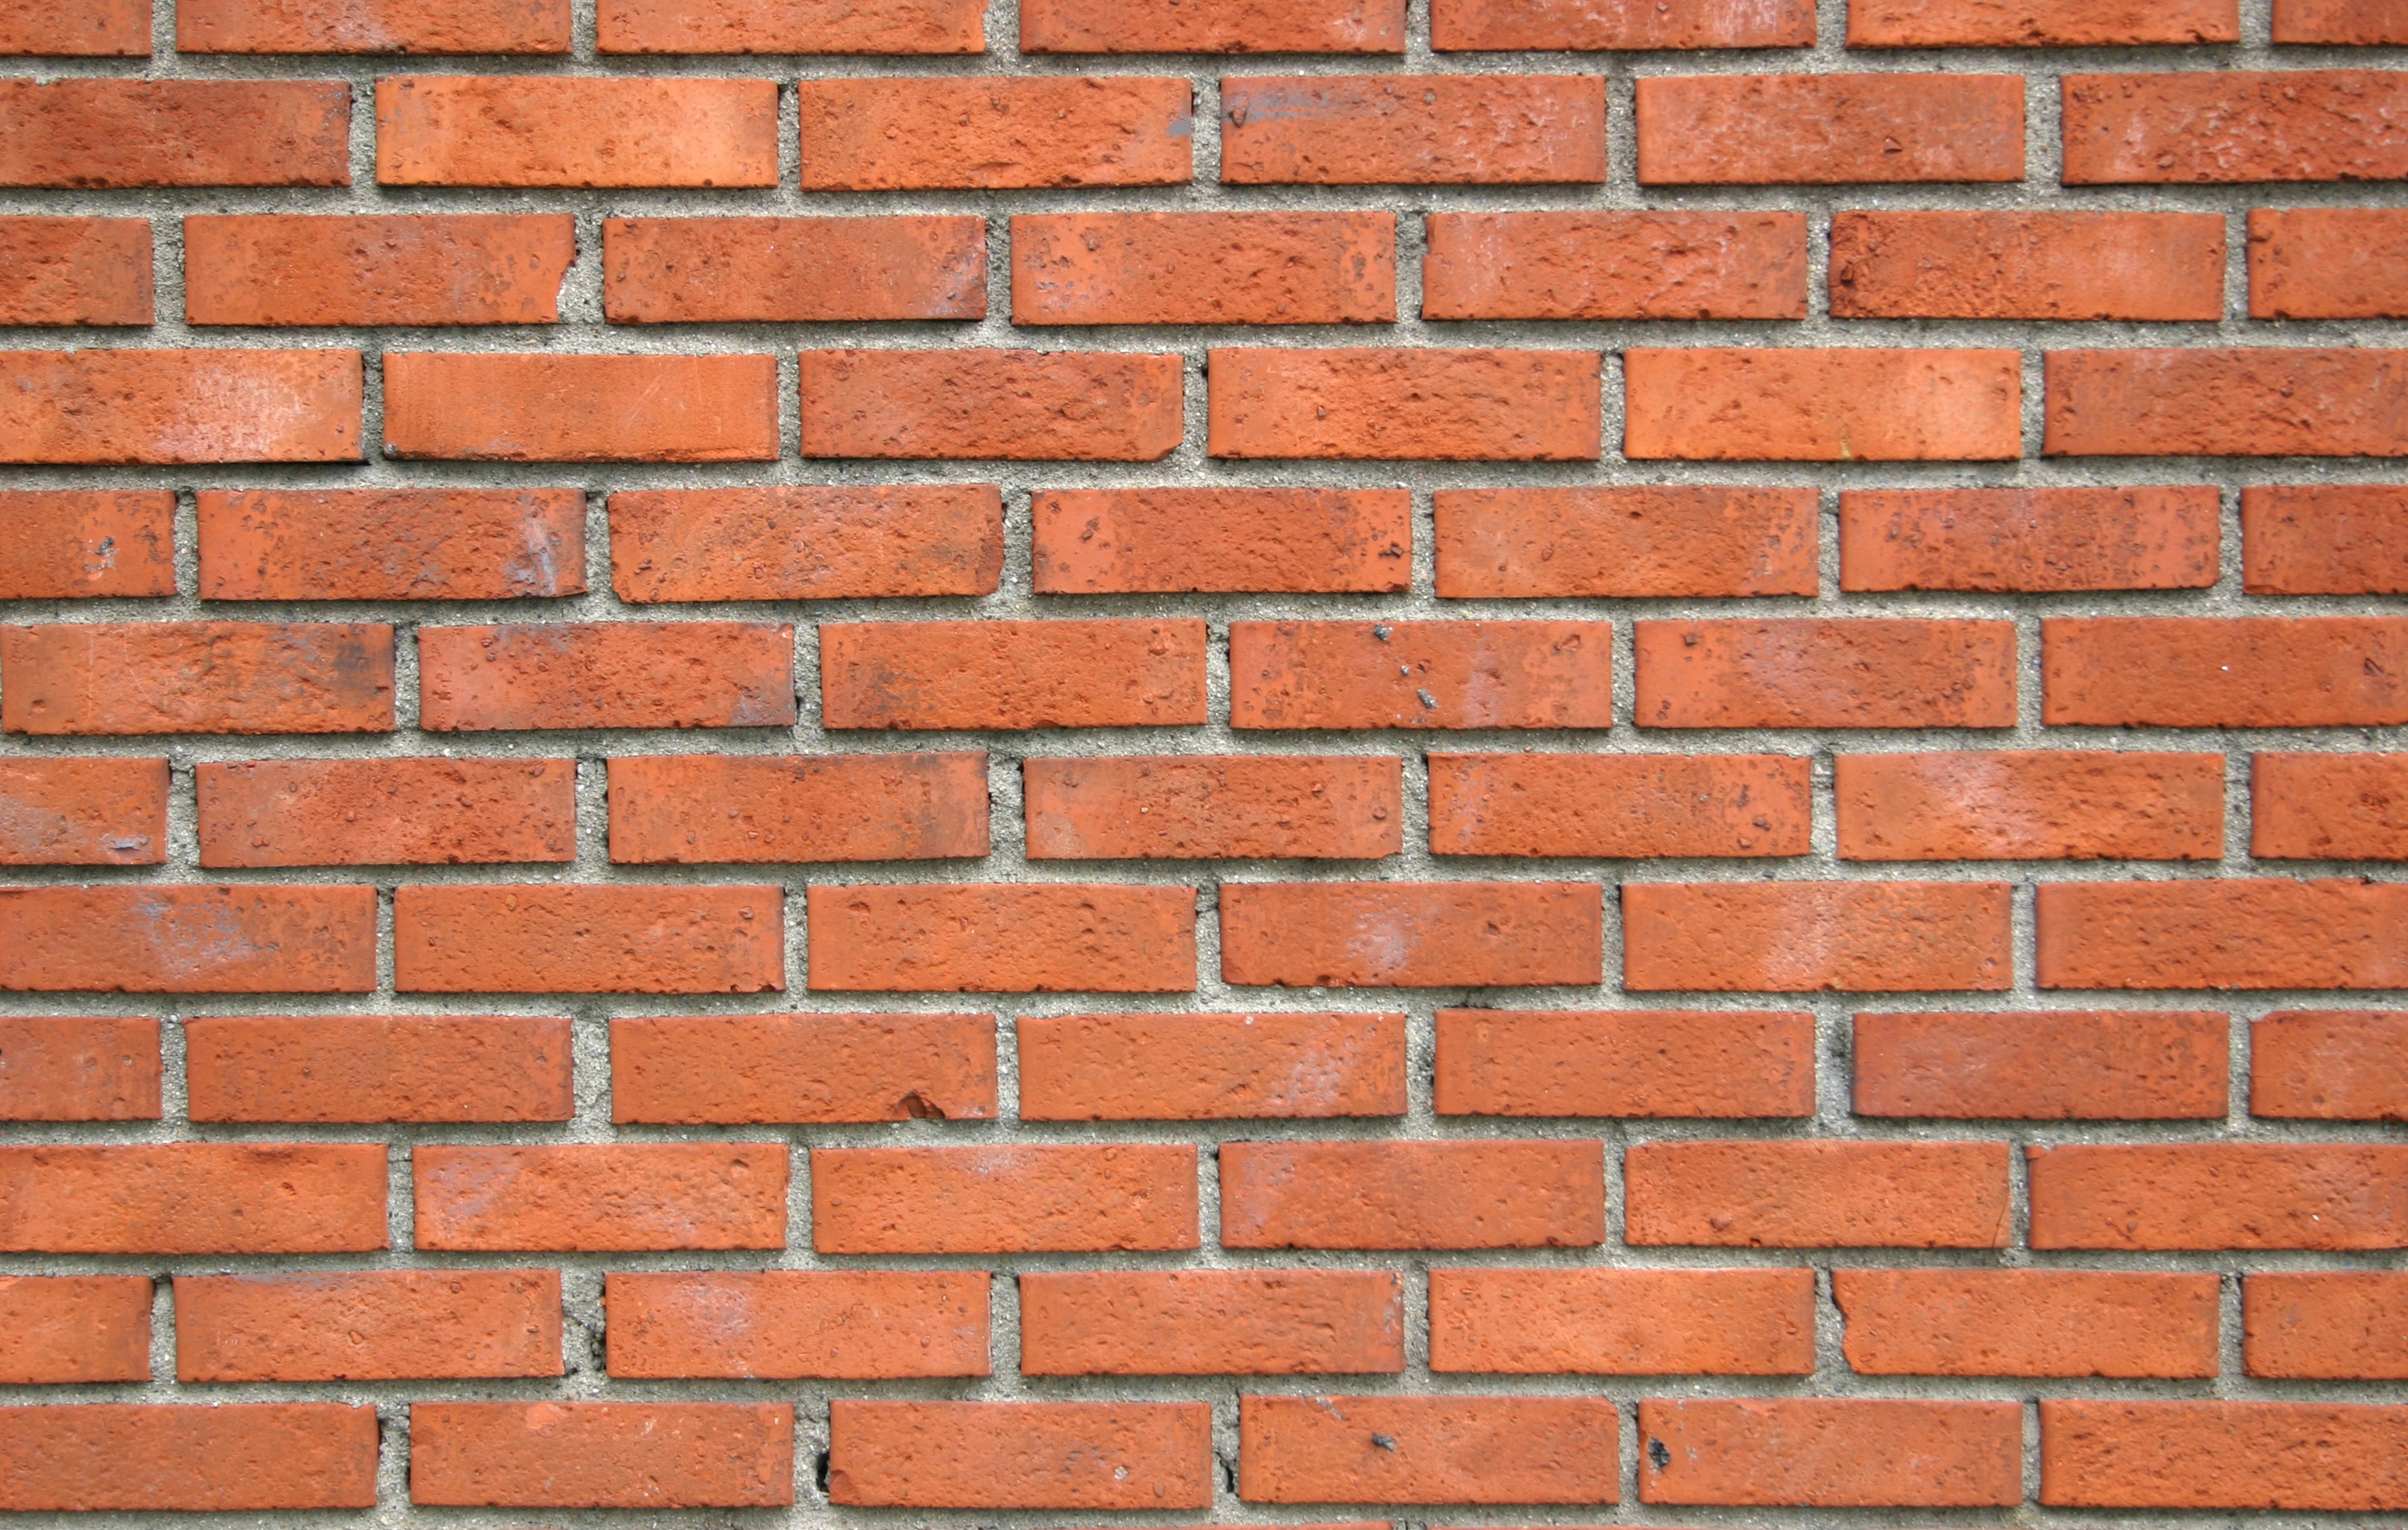 Home Design : Building Brick Wall Clipart Siding Architects.